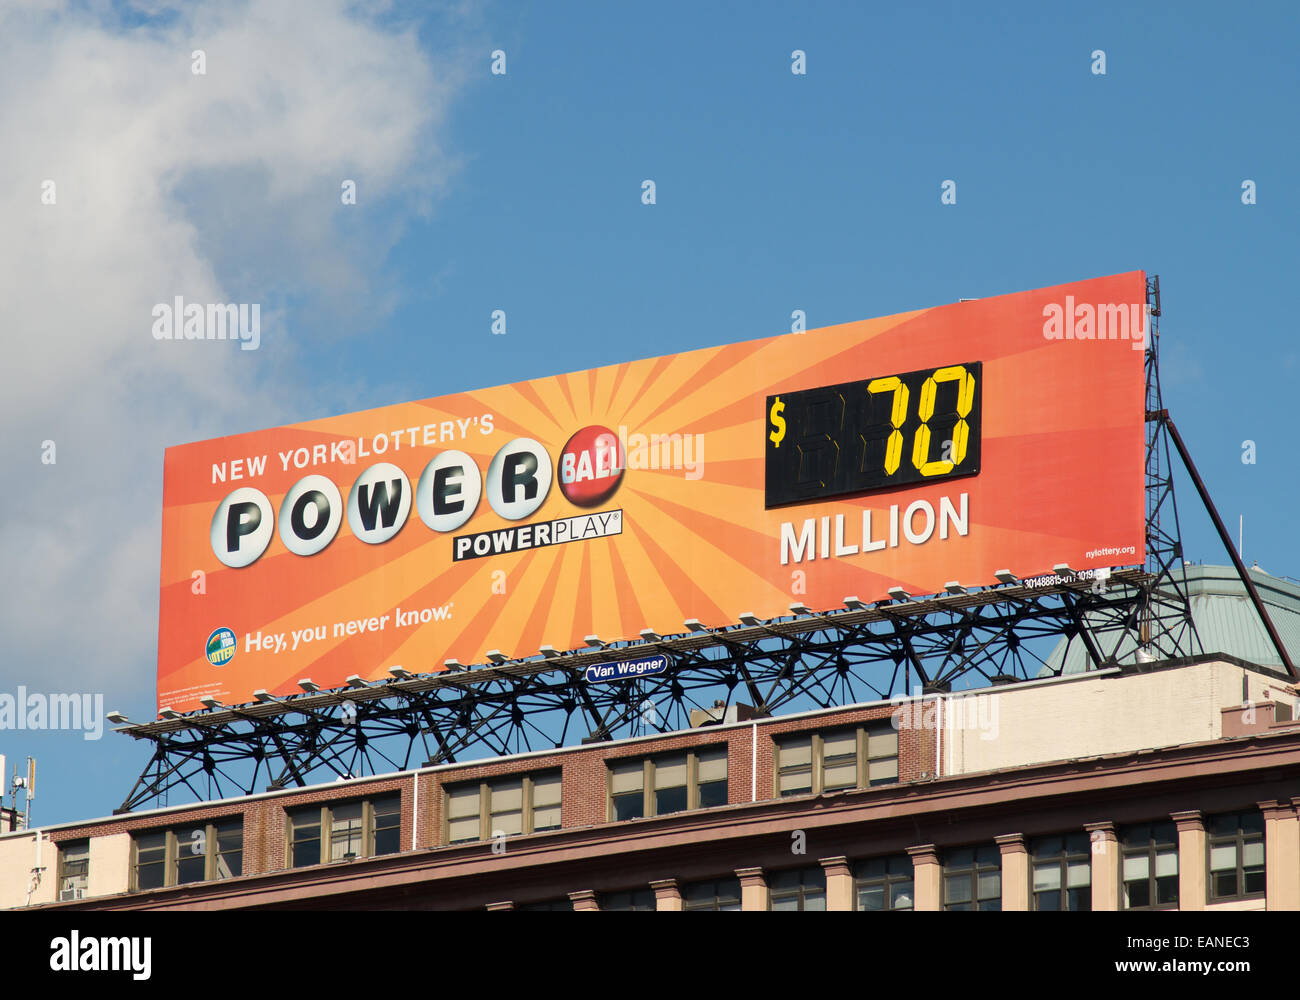 New York Lottery Stock Photos & New York Lottery Stock Images - Alamy